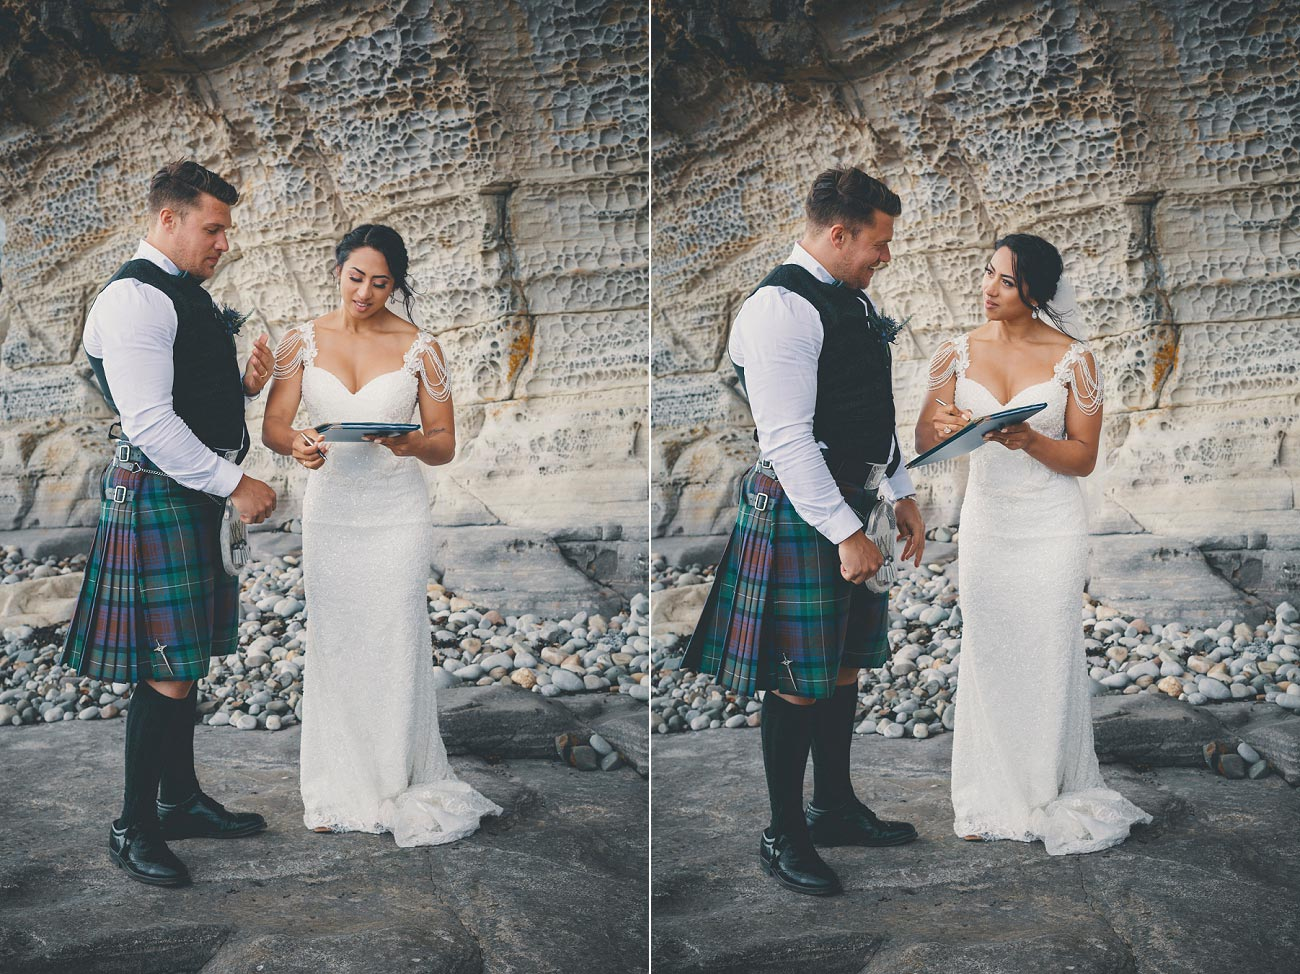 intimate elopement wedding photography isle of skye scotland 0022